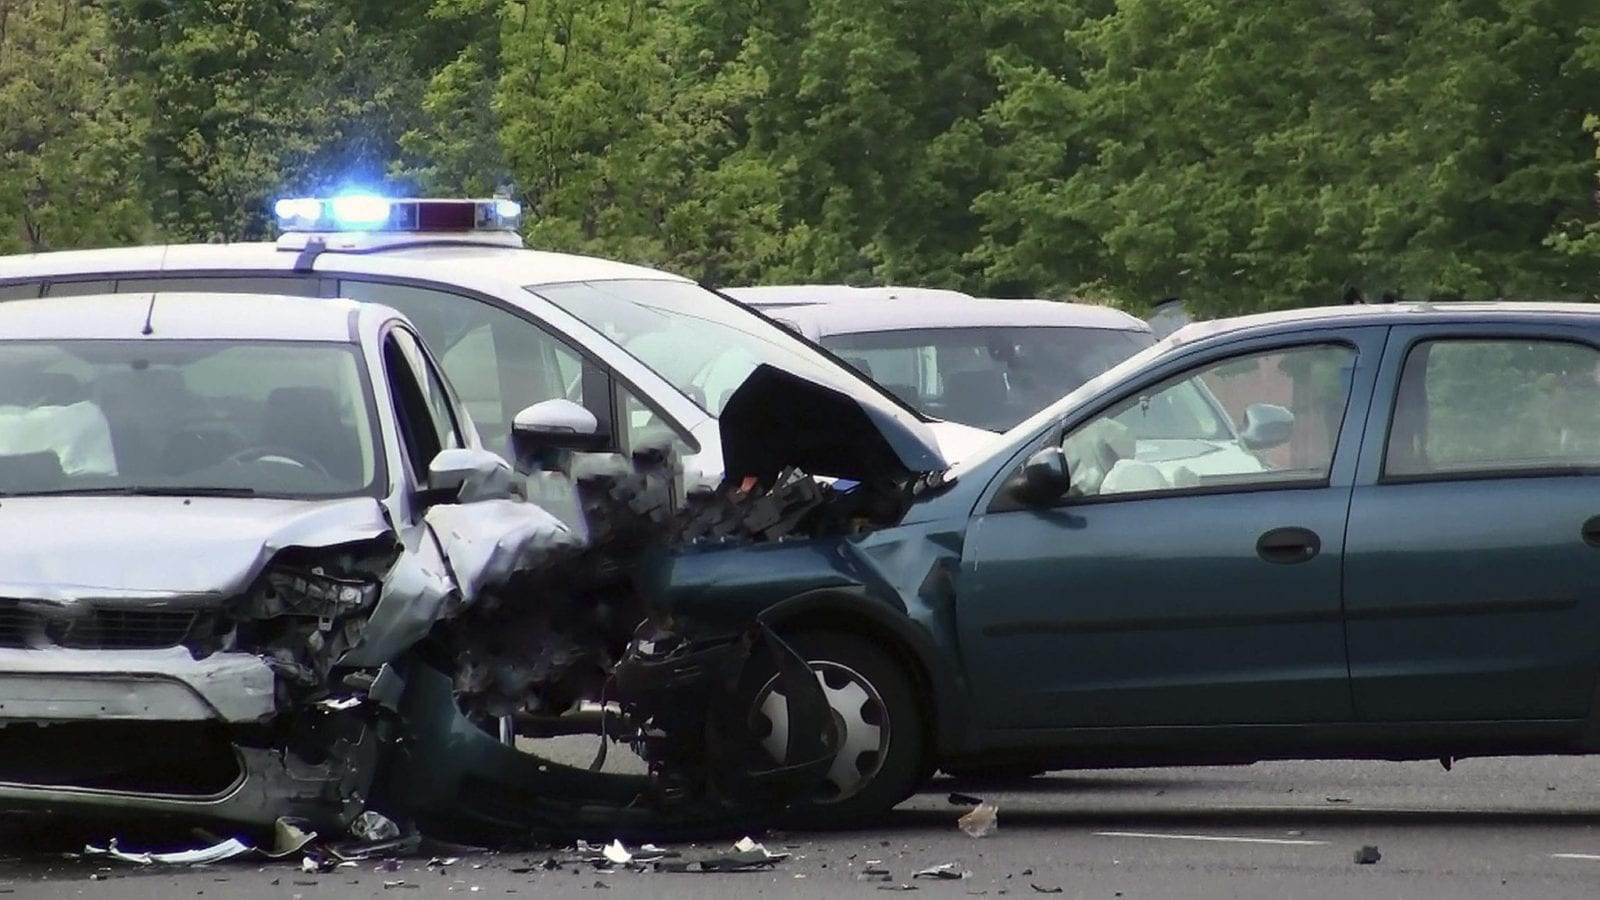 Side Impact Car Accident Scene Stock Photo